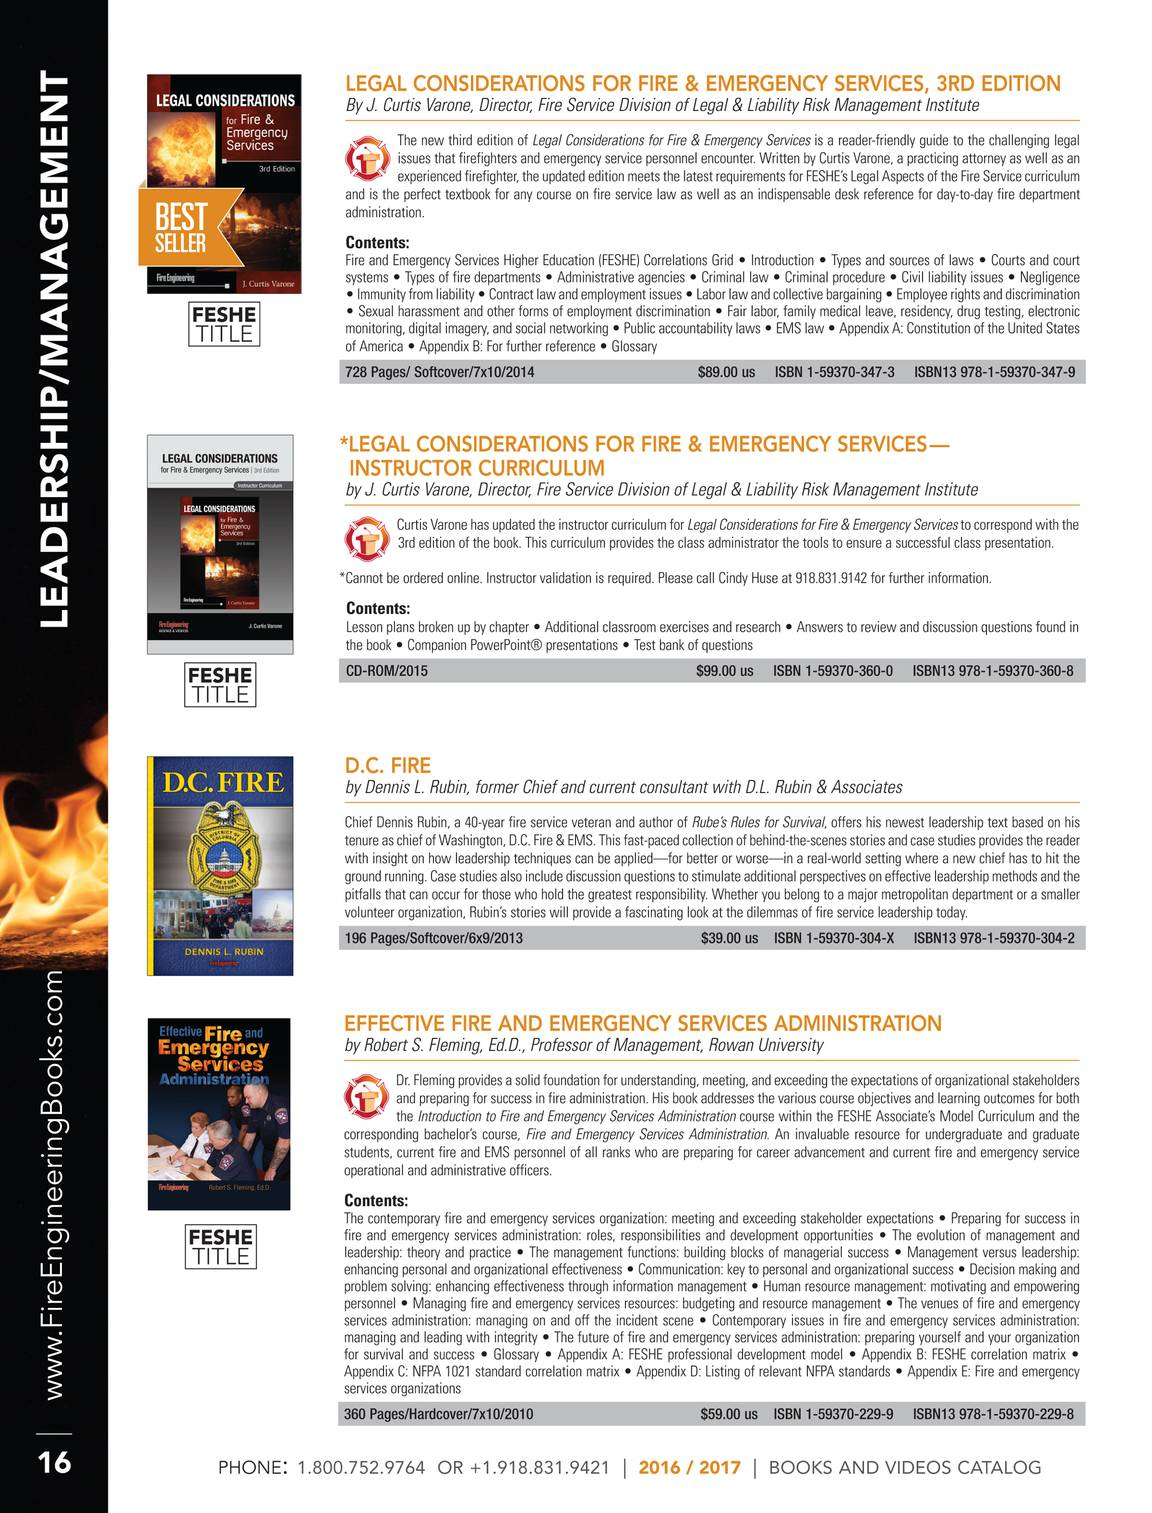 Pennwell Supplements - Spring 2016 Fire Catalog - page 17